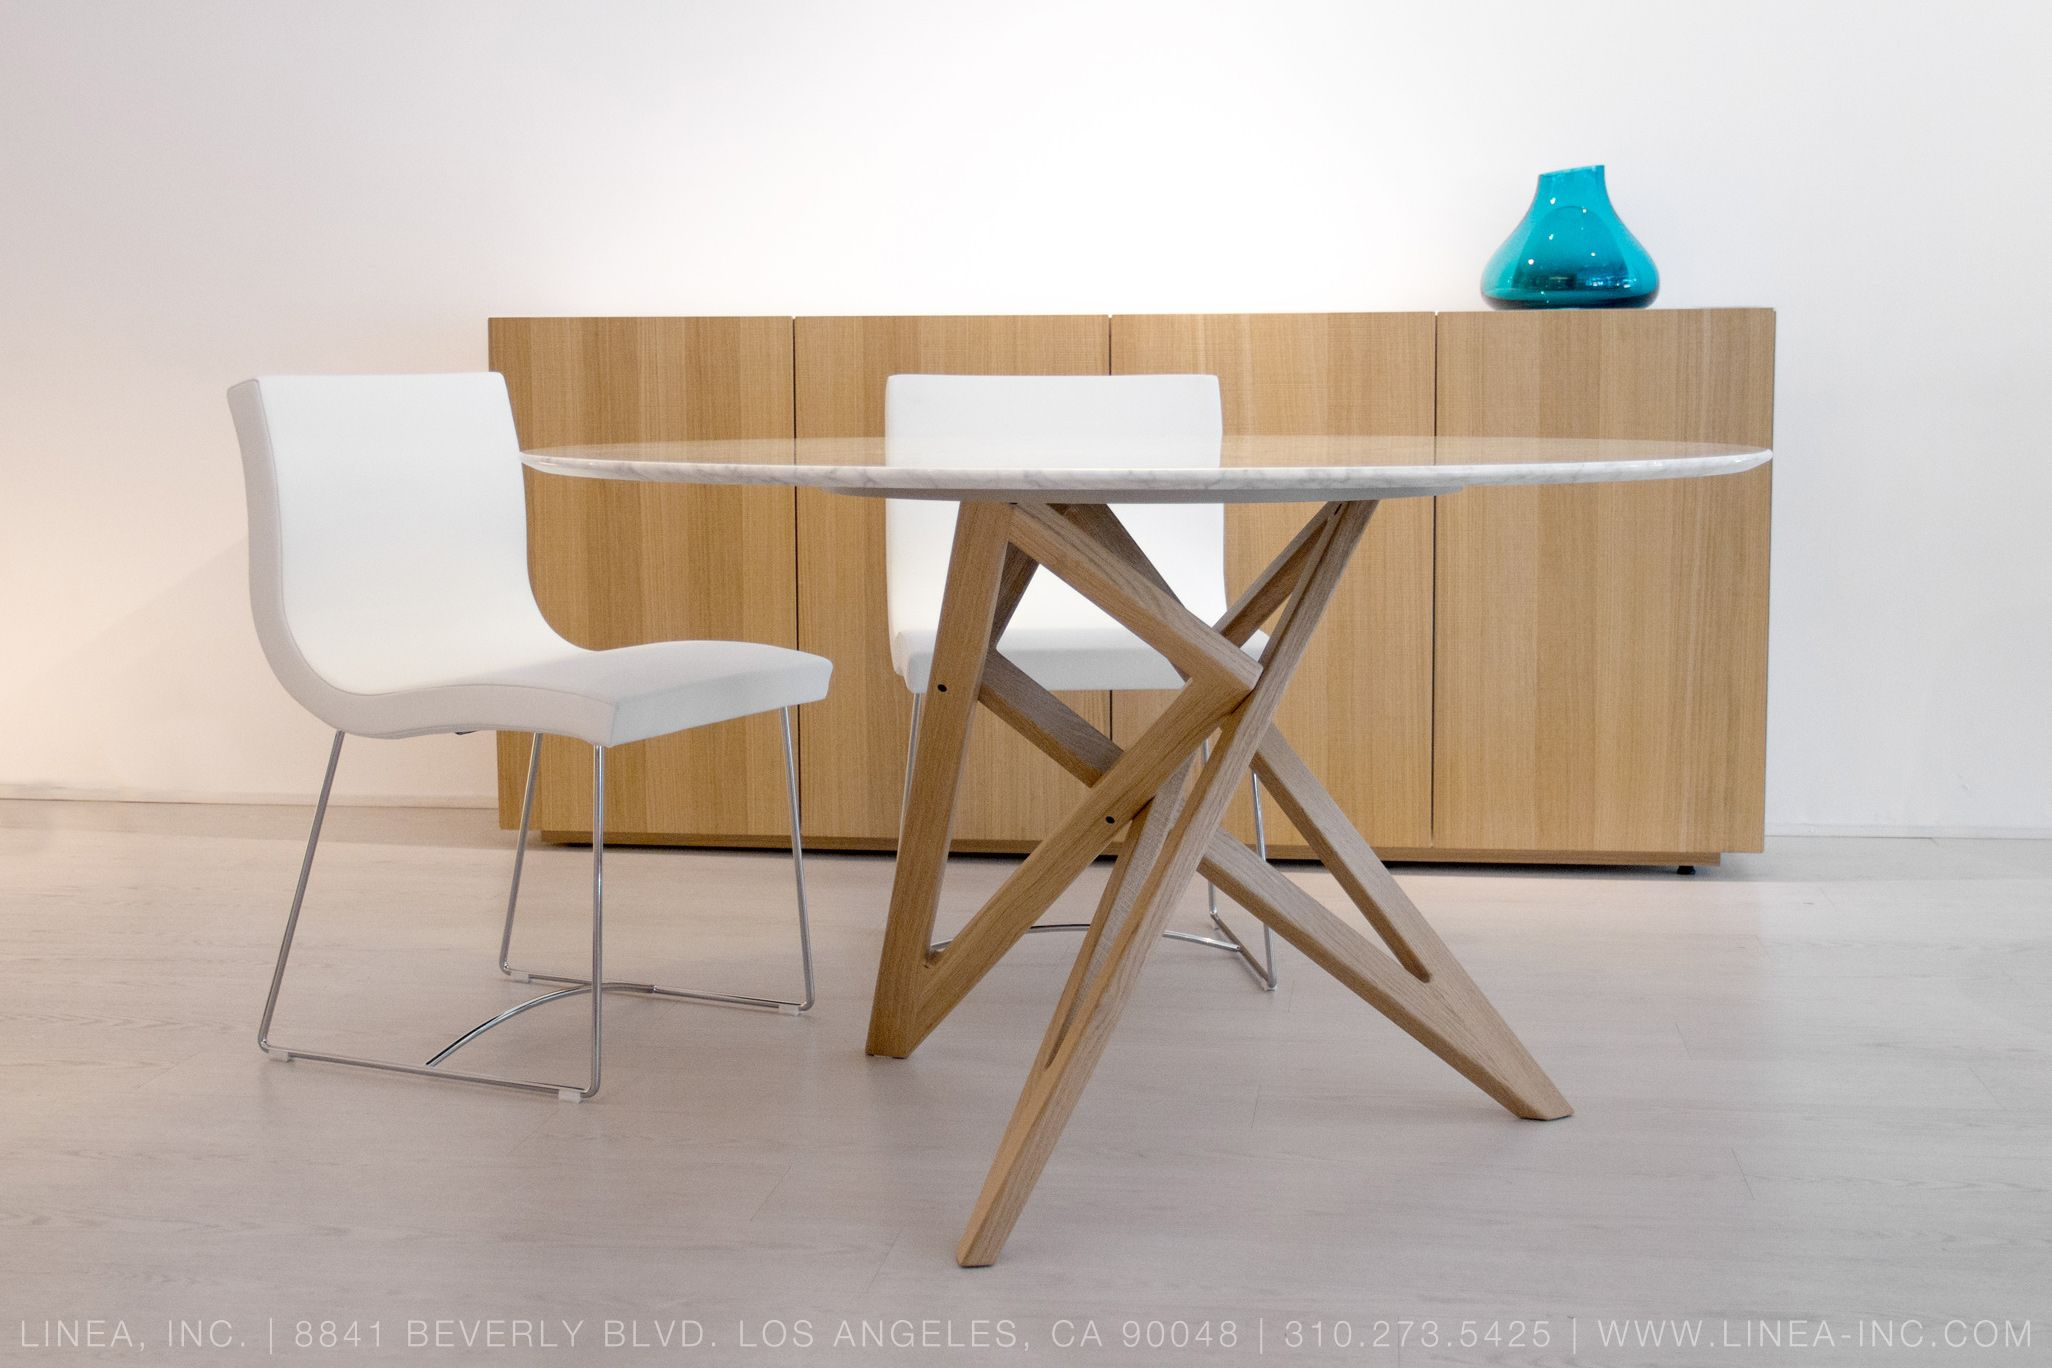 . Sala Dining Chairs  Ennea Dining Table  Et Cetera Sideboard for